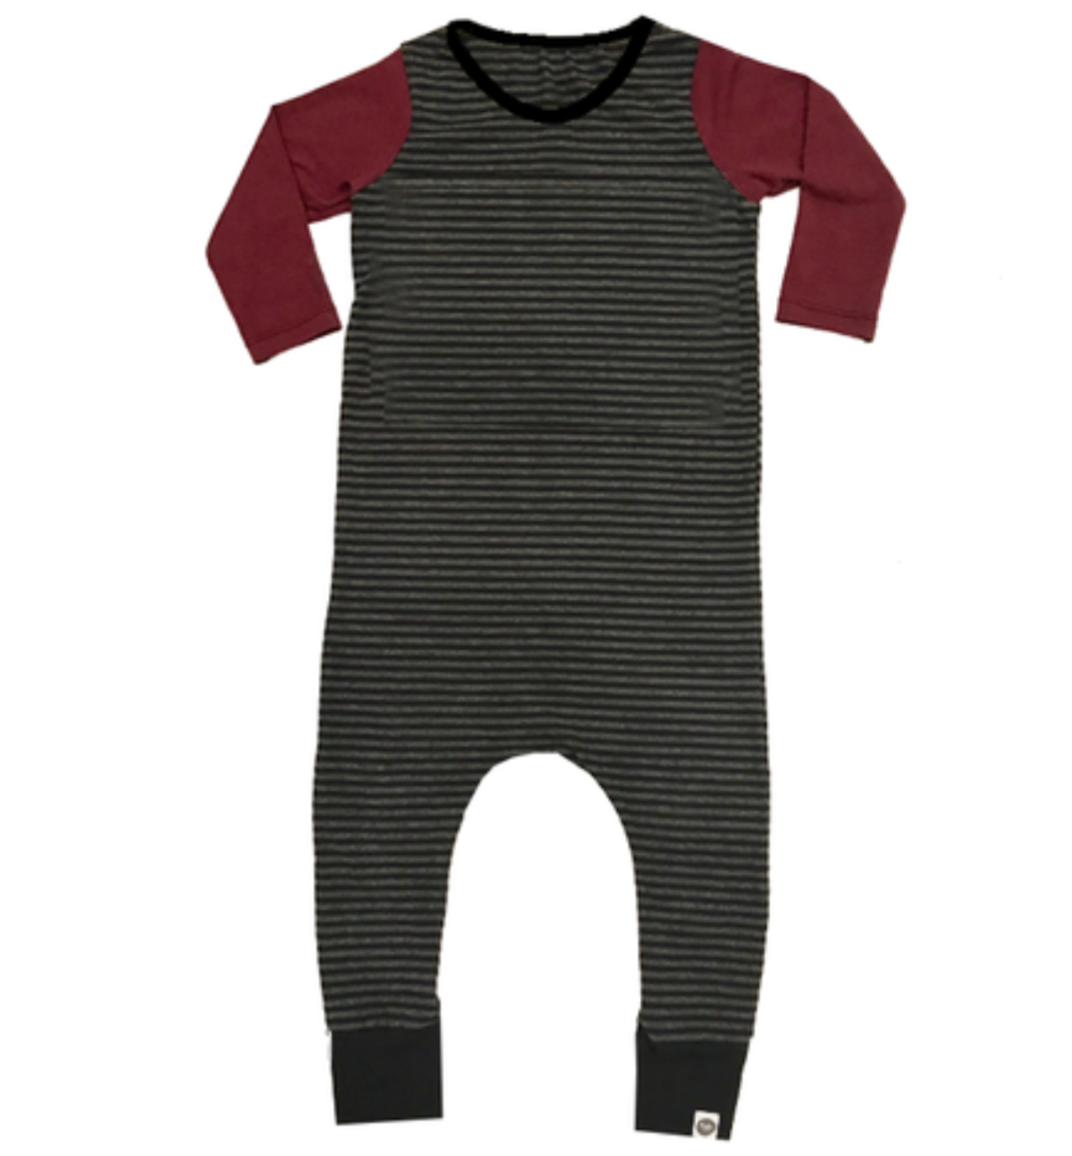 Bamboo Black Charcoal Stripe Maroon Long Sleeve Basic Romper